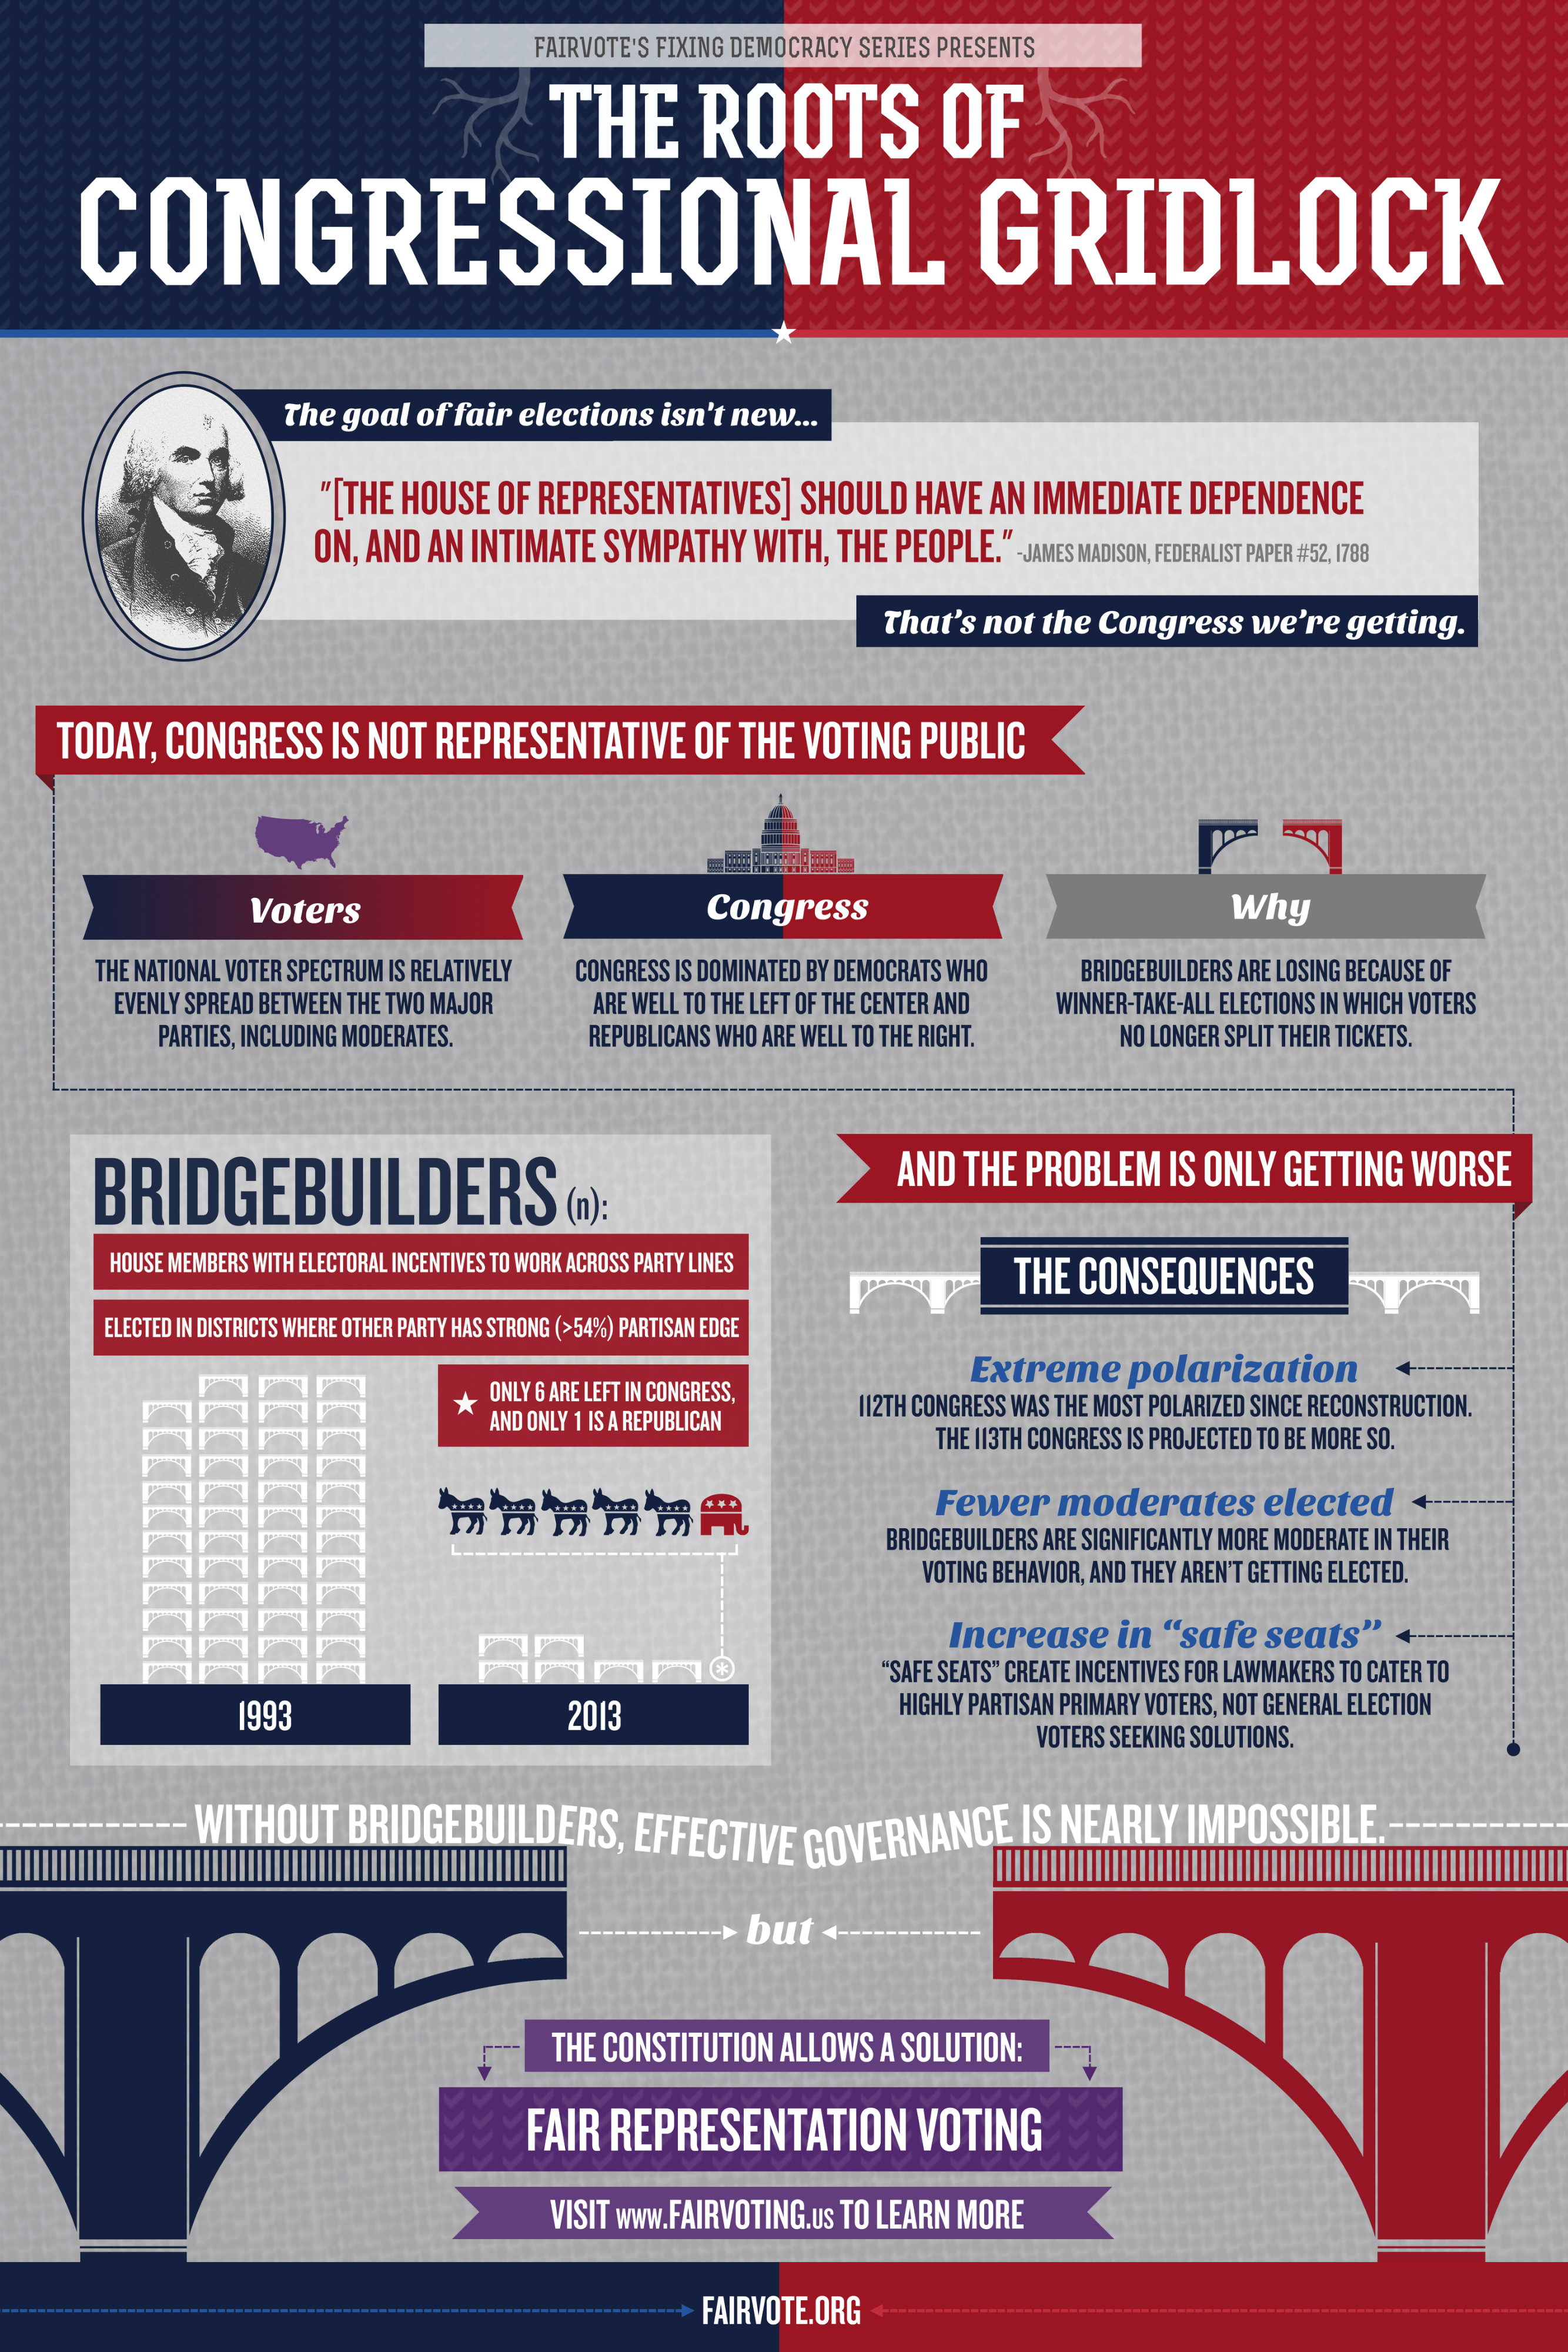 Infographic Describing Problems with and Causes Of Congressional Gridlock in the United States